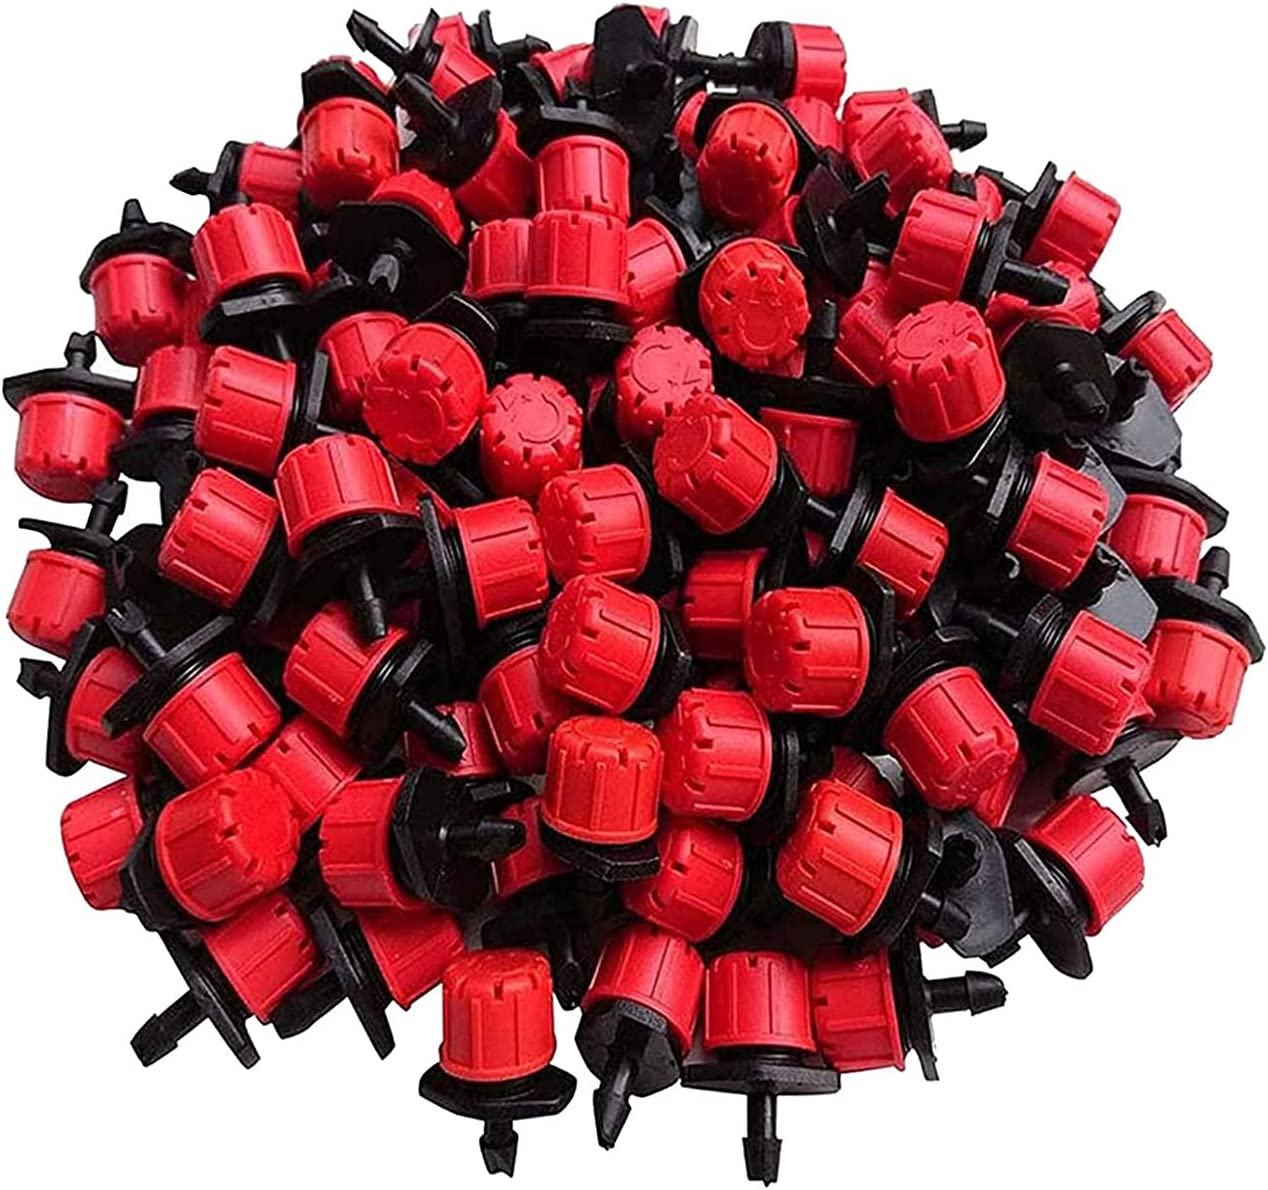 SDFH 100 Pcs Adjustable Irrigation 360 Drippers Sale Special Price Ranking TOP15 Sprinklers Degre